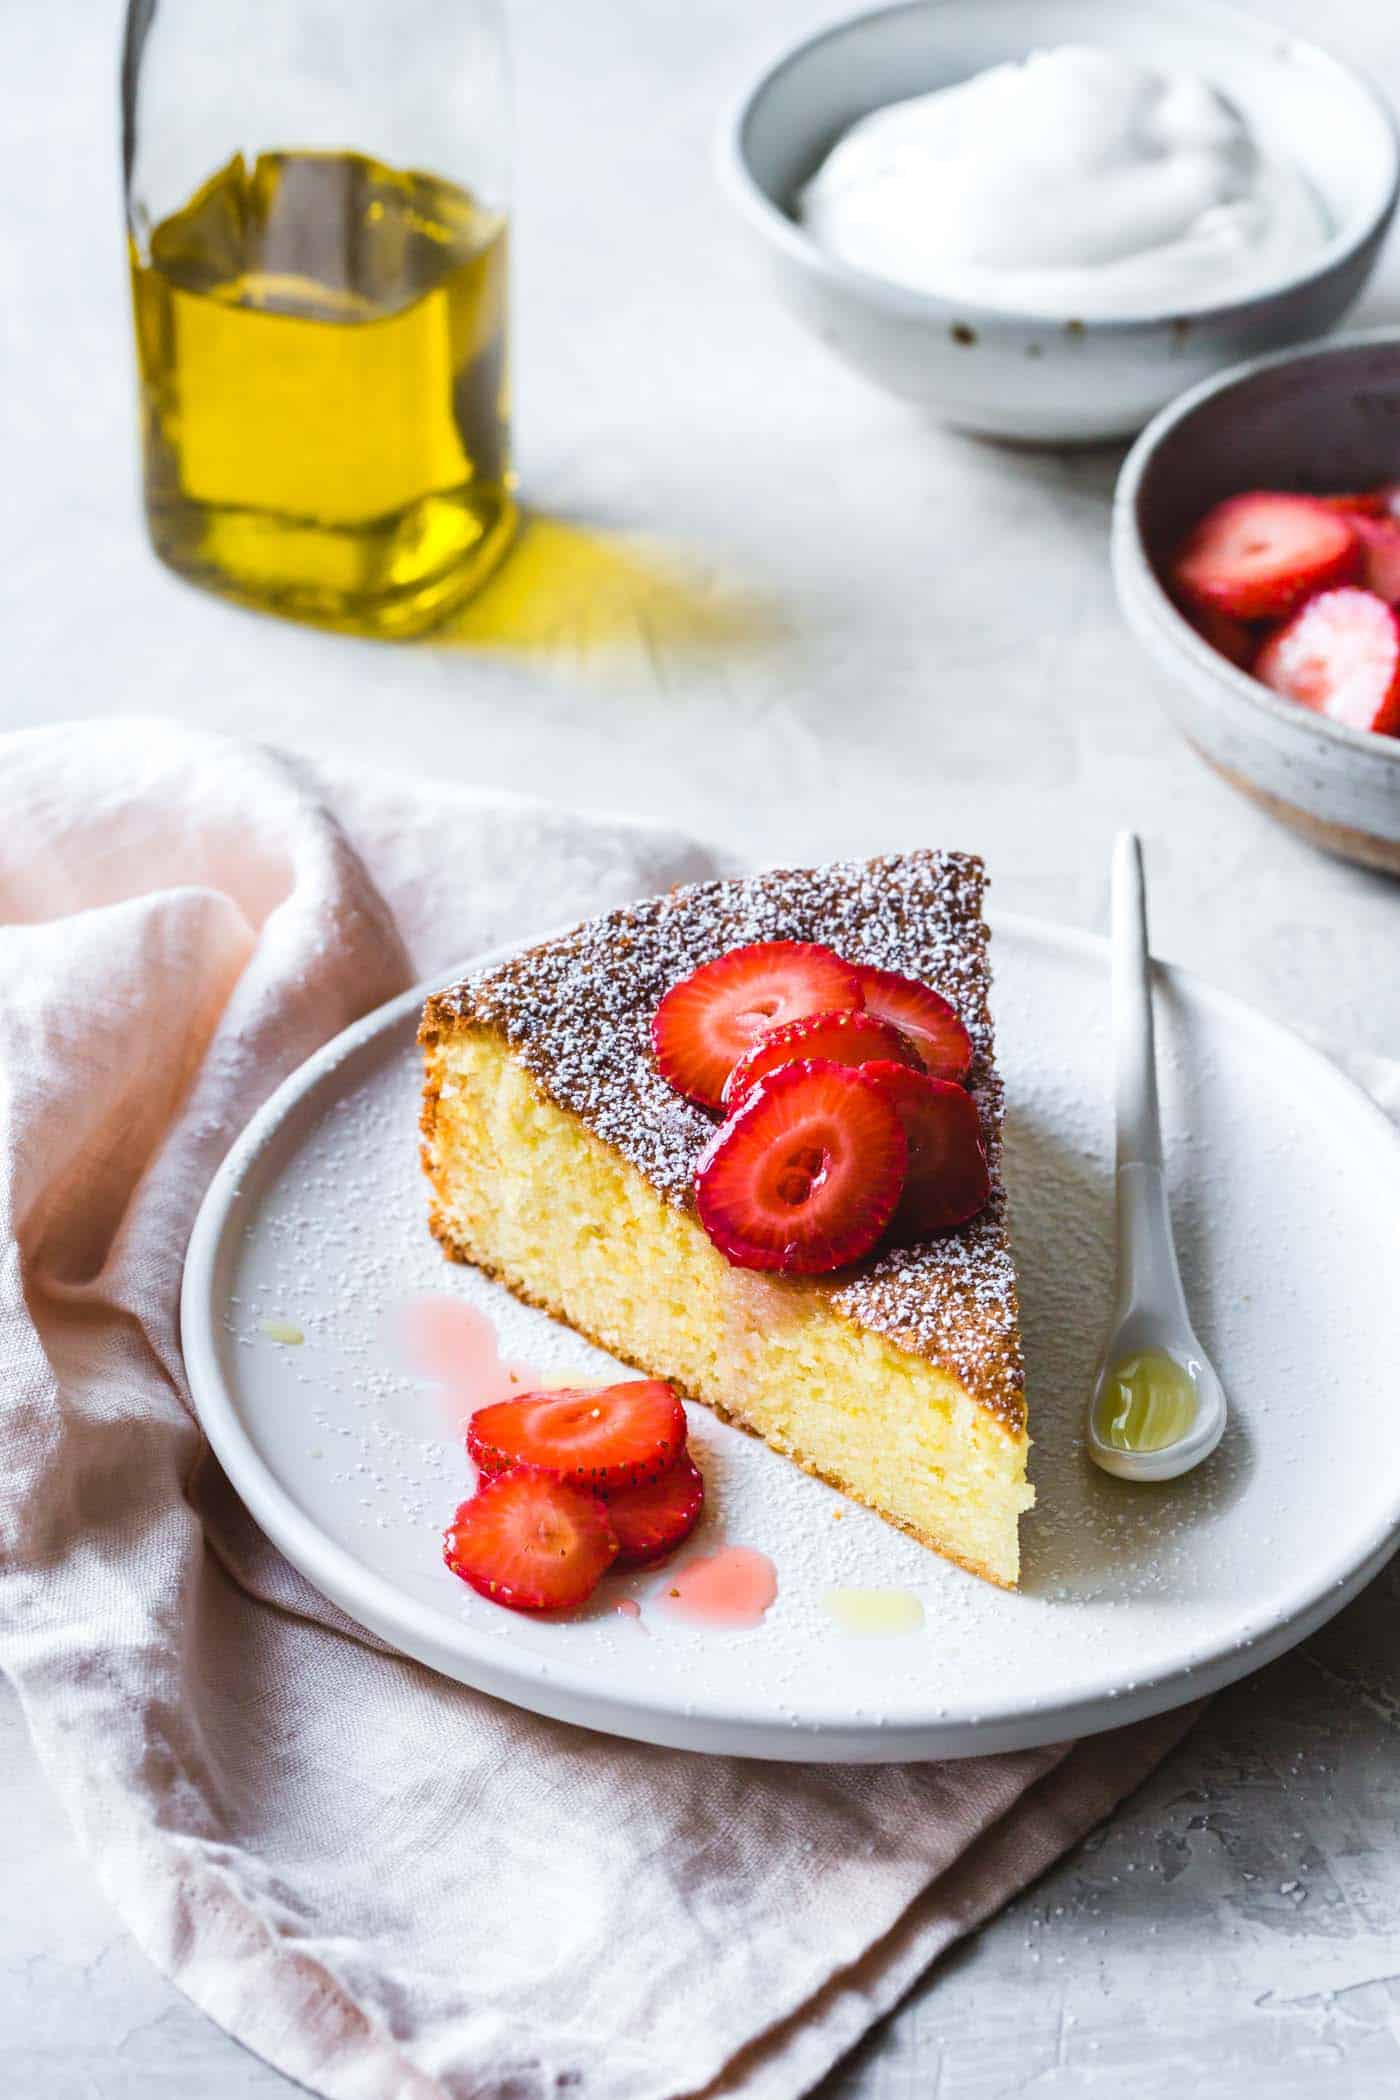 Gluten-free almond cake with lemon and olive oil, on a plate with strawberries